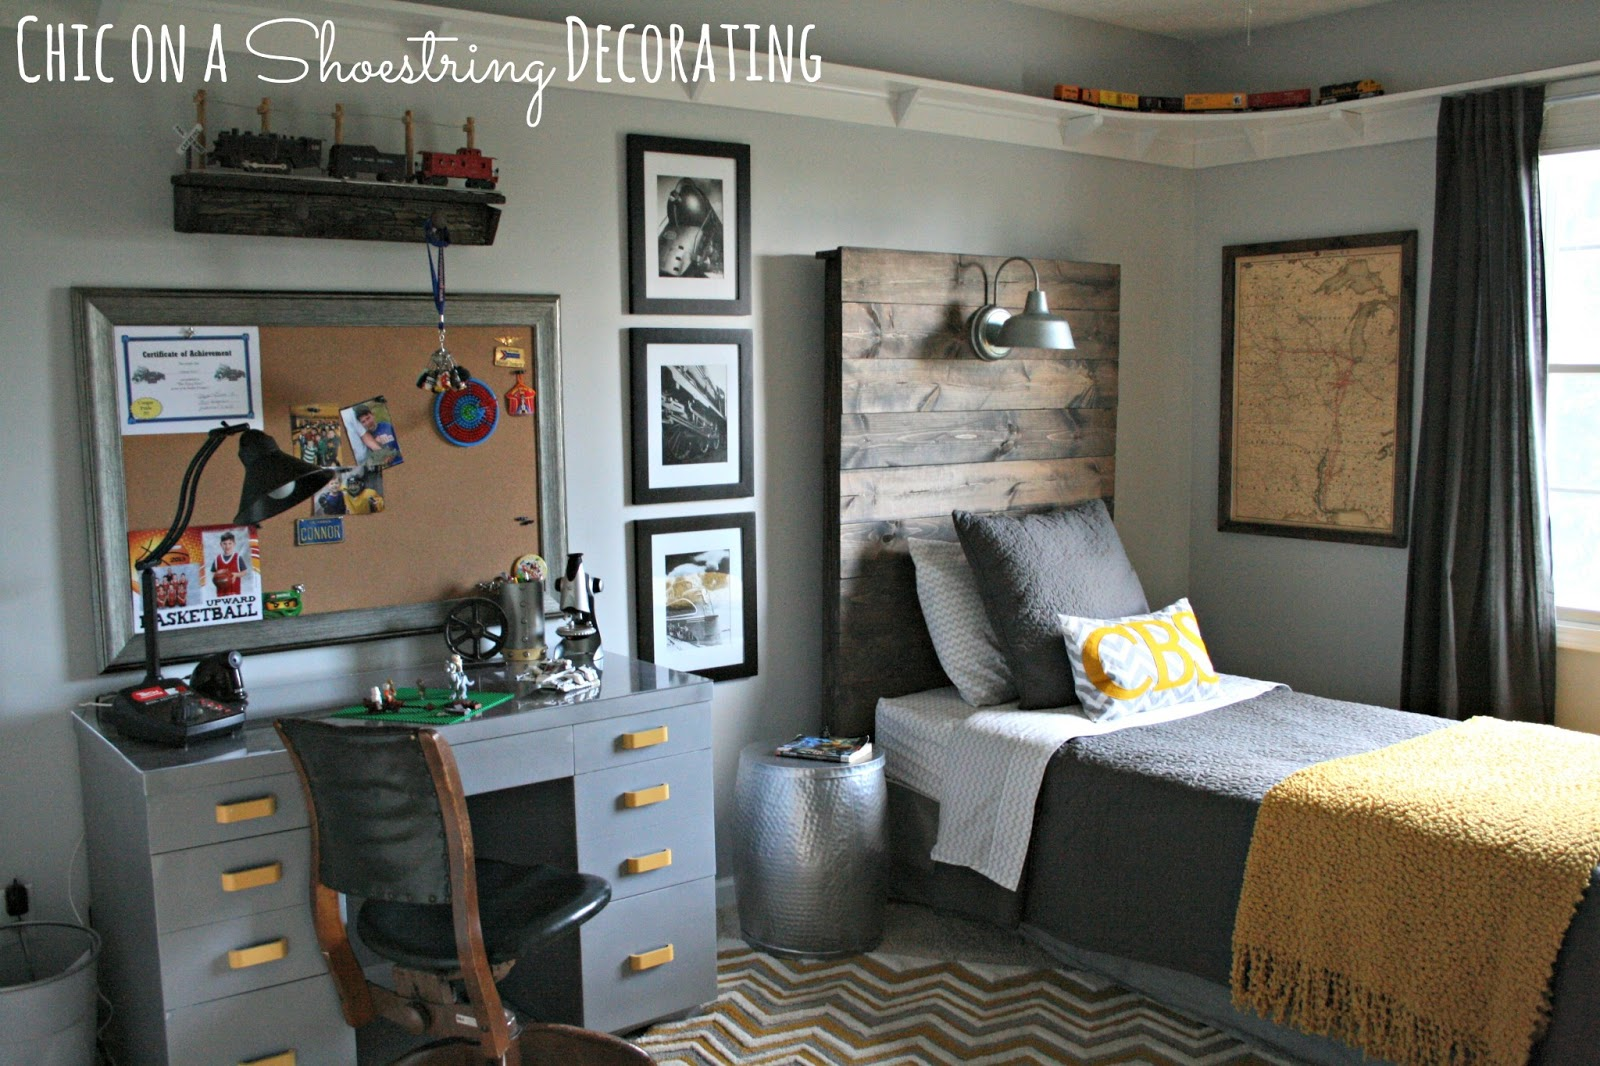 Zimmer Für Jungs Chic On A Shoestring Decorating Bigger Boy Room Reveal